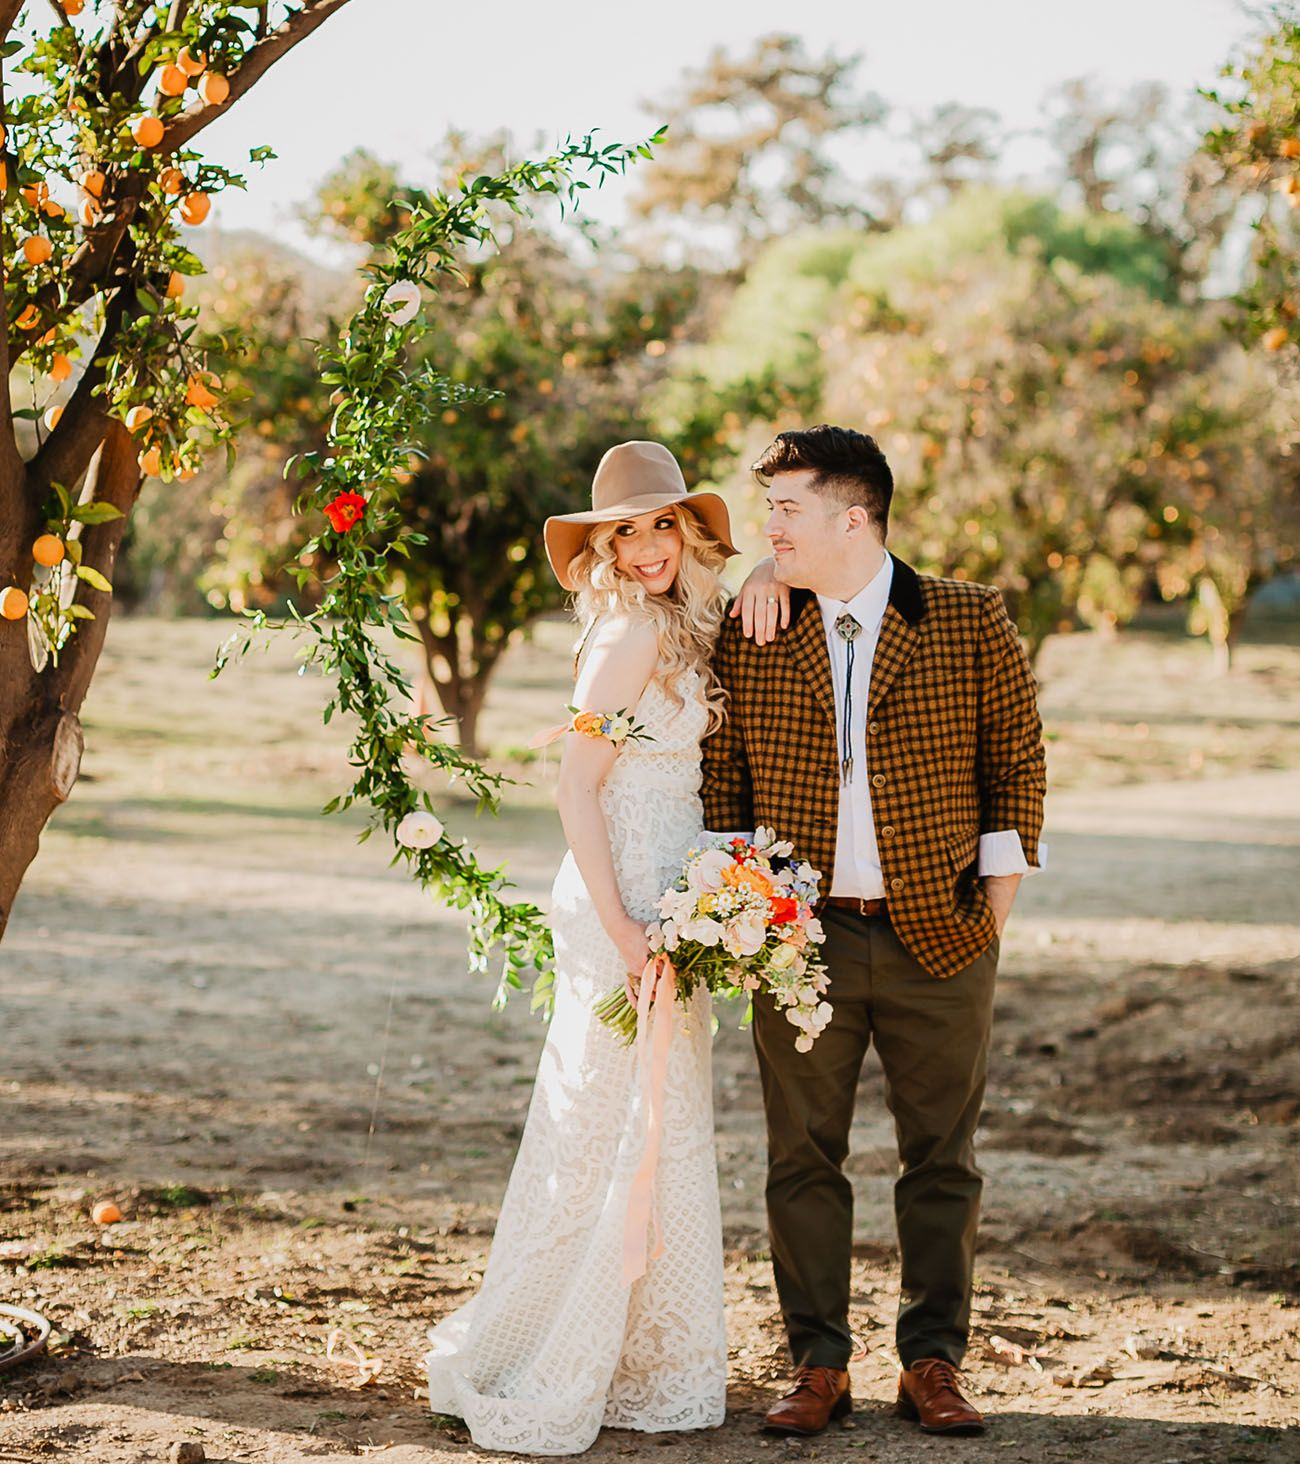 Here Comes The Sun Groovy Mustard Yellow 70s Wedding Inspiration With A Vw Bus Green Wedding Shoes In 2020 Couples Wedding Attire Wedding Inspiration Wedding